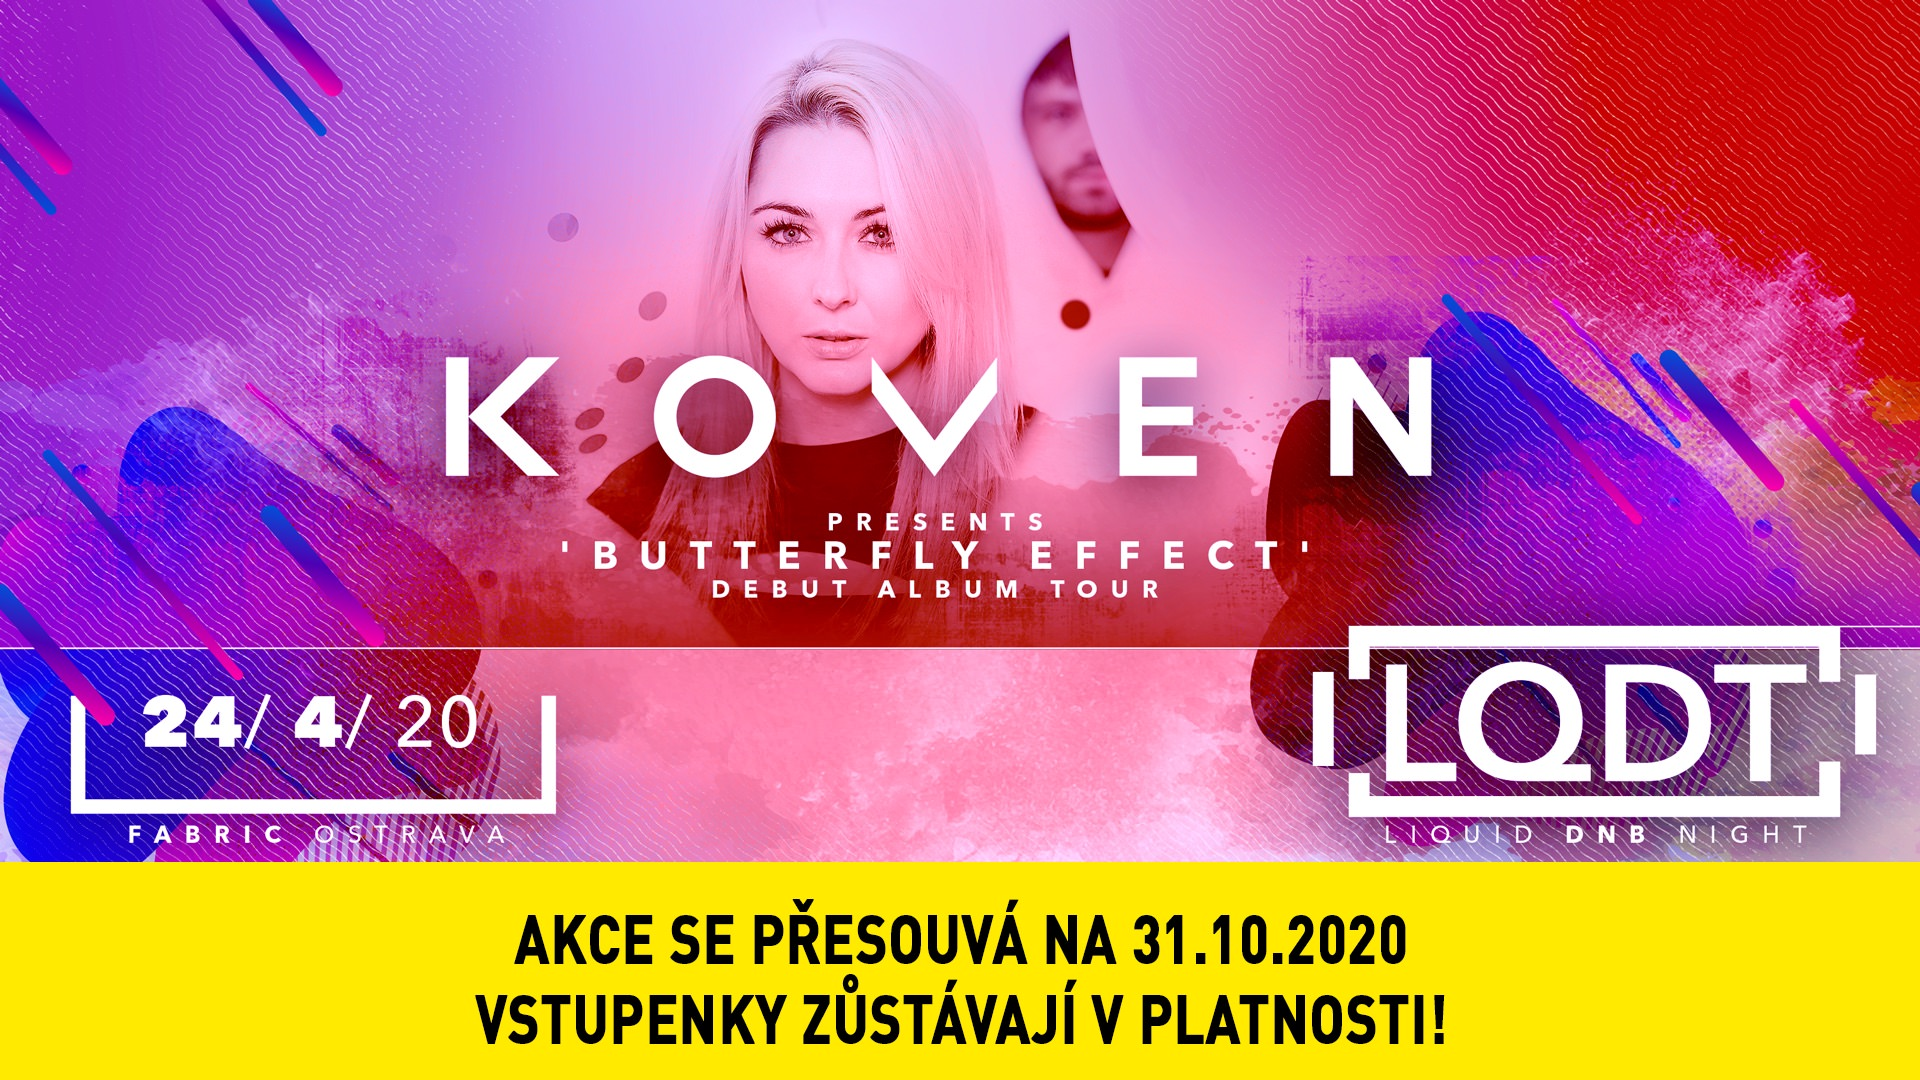 LQDT w/ KOVEN: BUTTERFLY EFFECT flyer